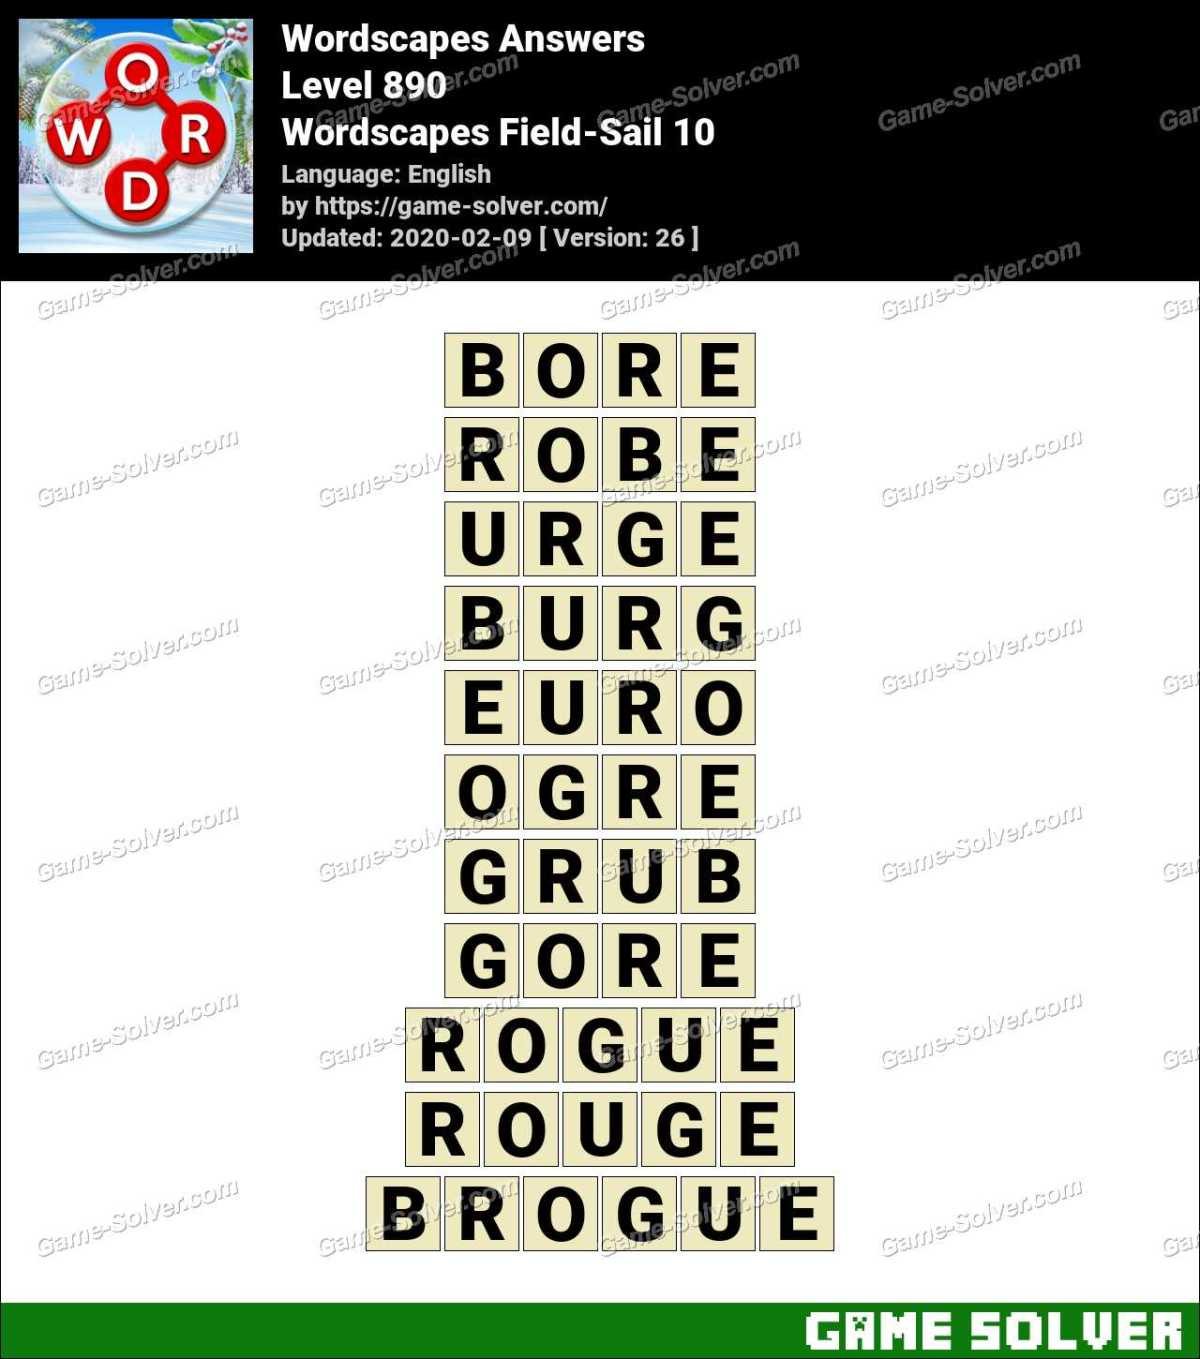 Wordscapes Field-Sail 10 Answers